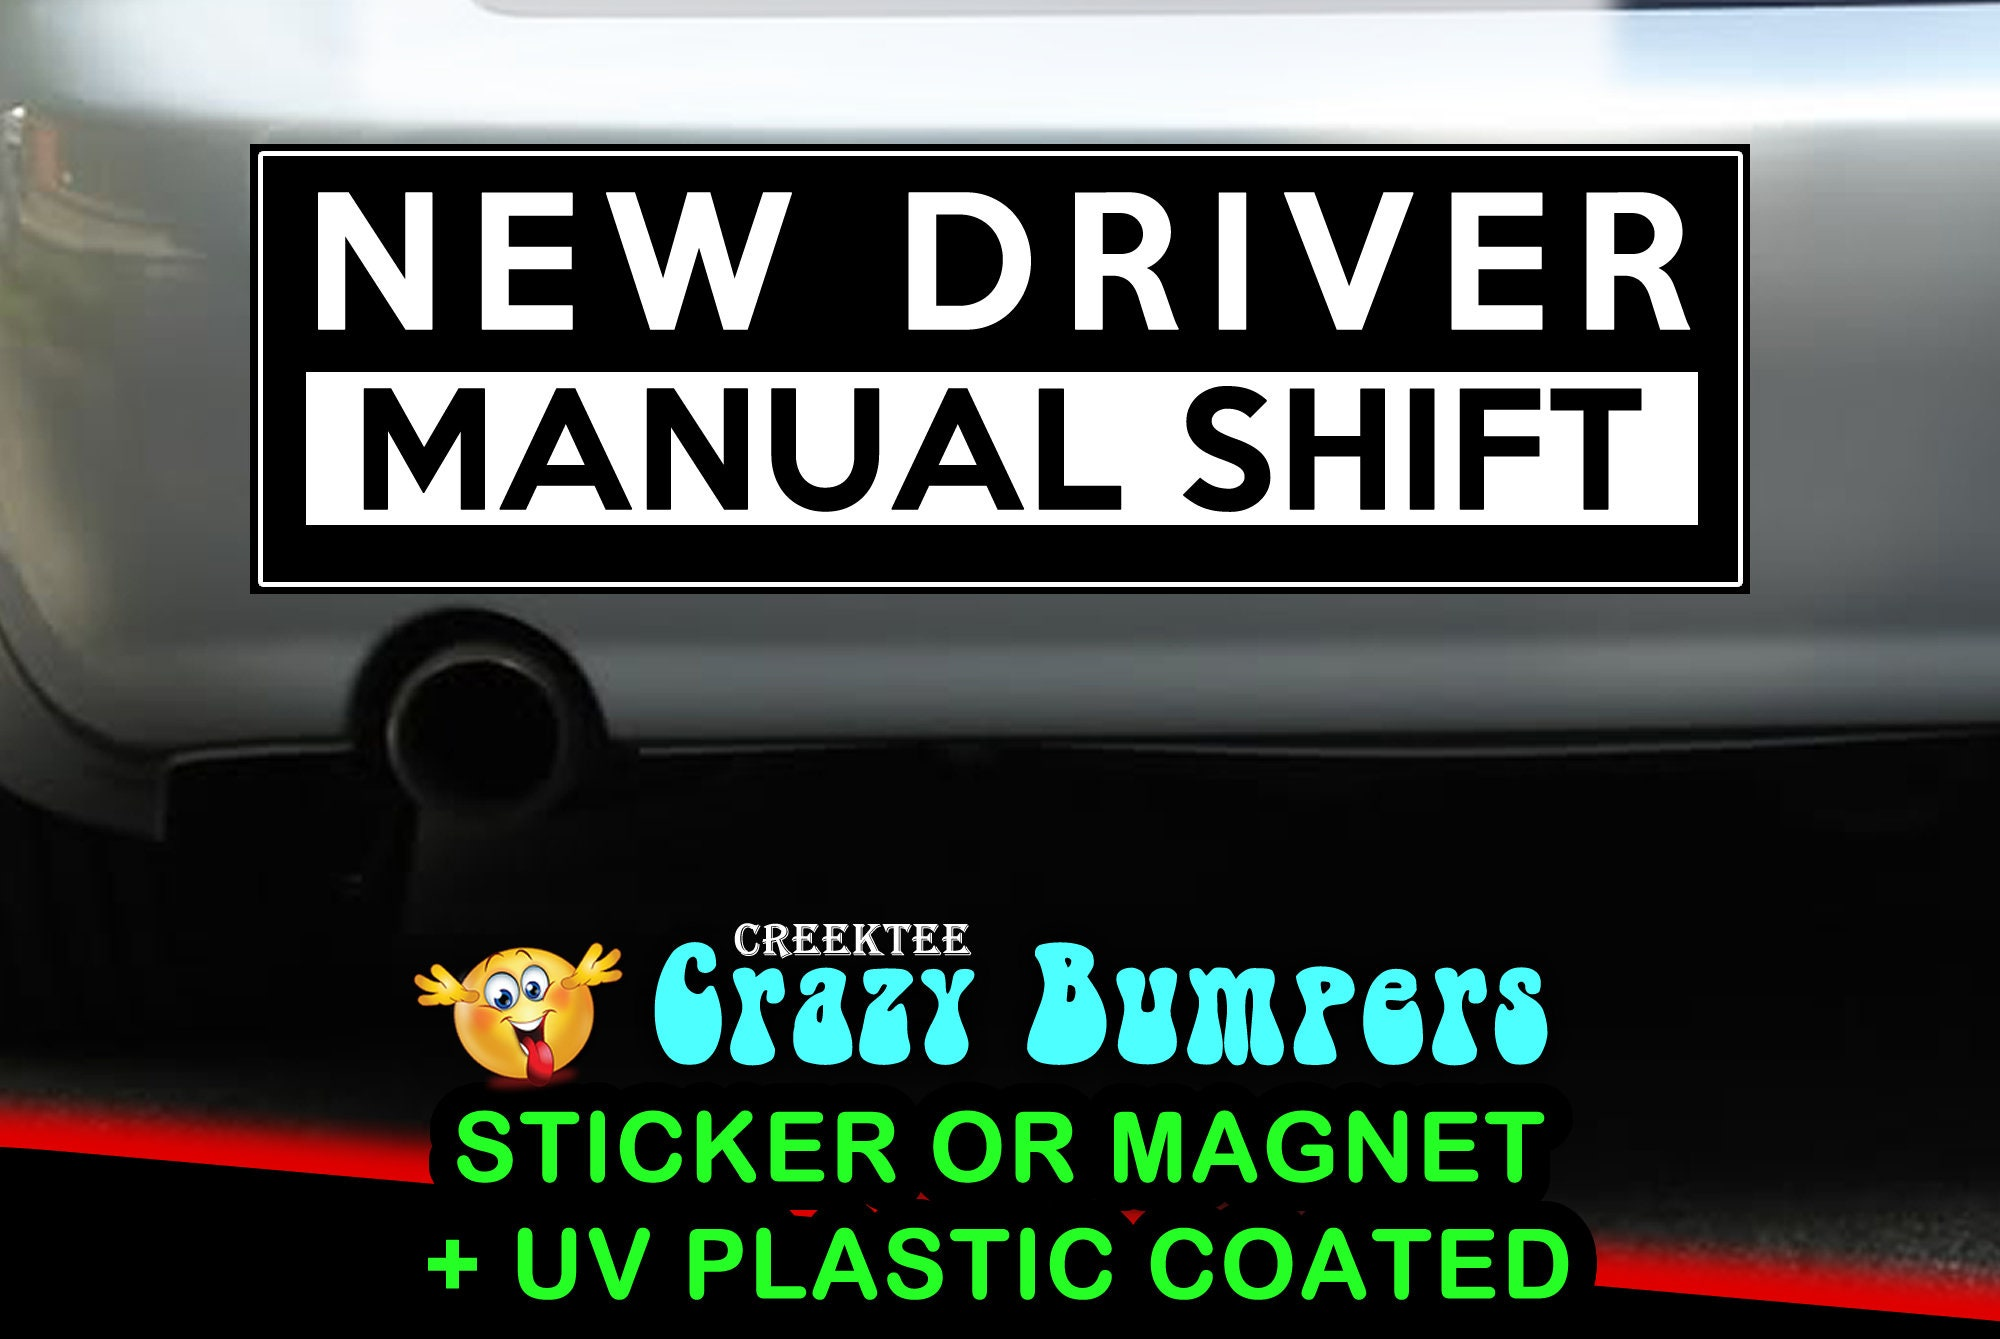 CAD$9.74 - New Driver Manual Shift 10 x 3 bumper sticker or bumper magnet or customize your own premium bumper sticker or car magnet